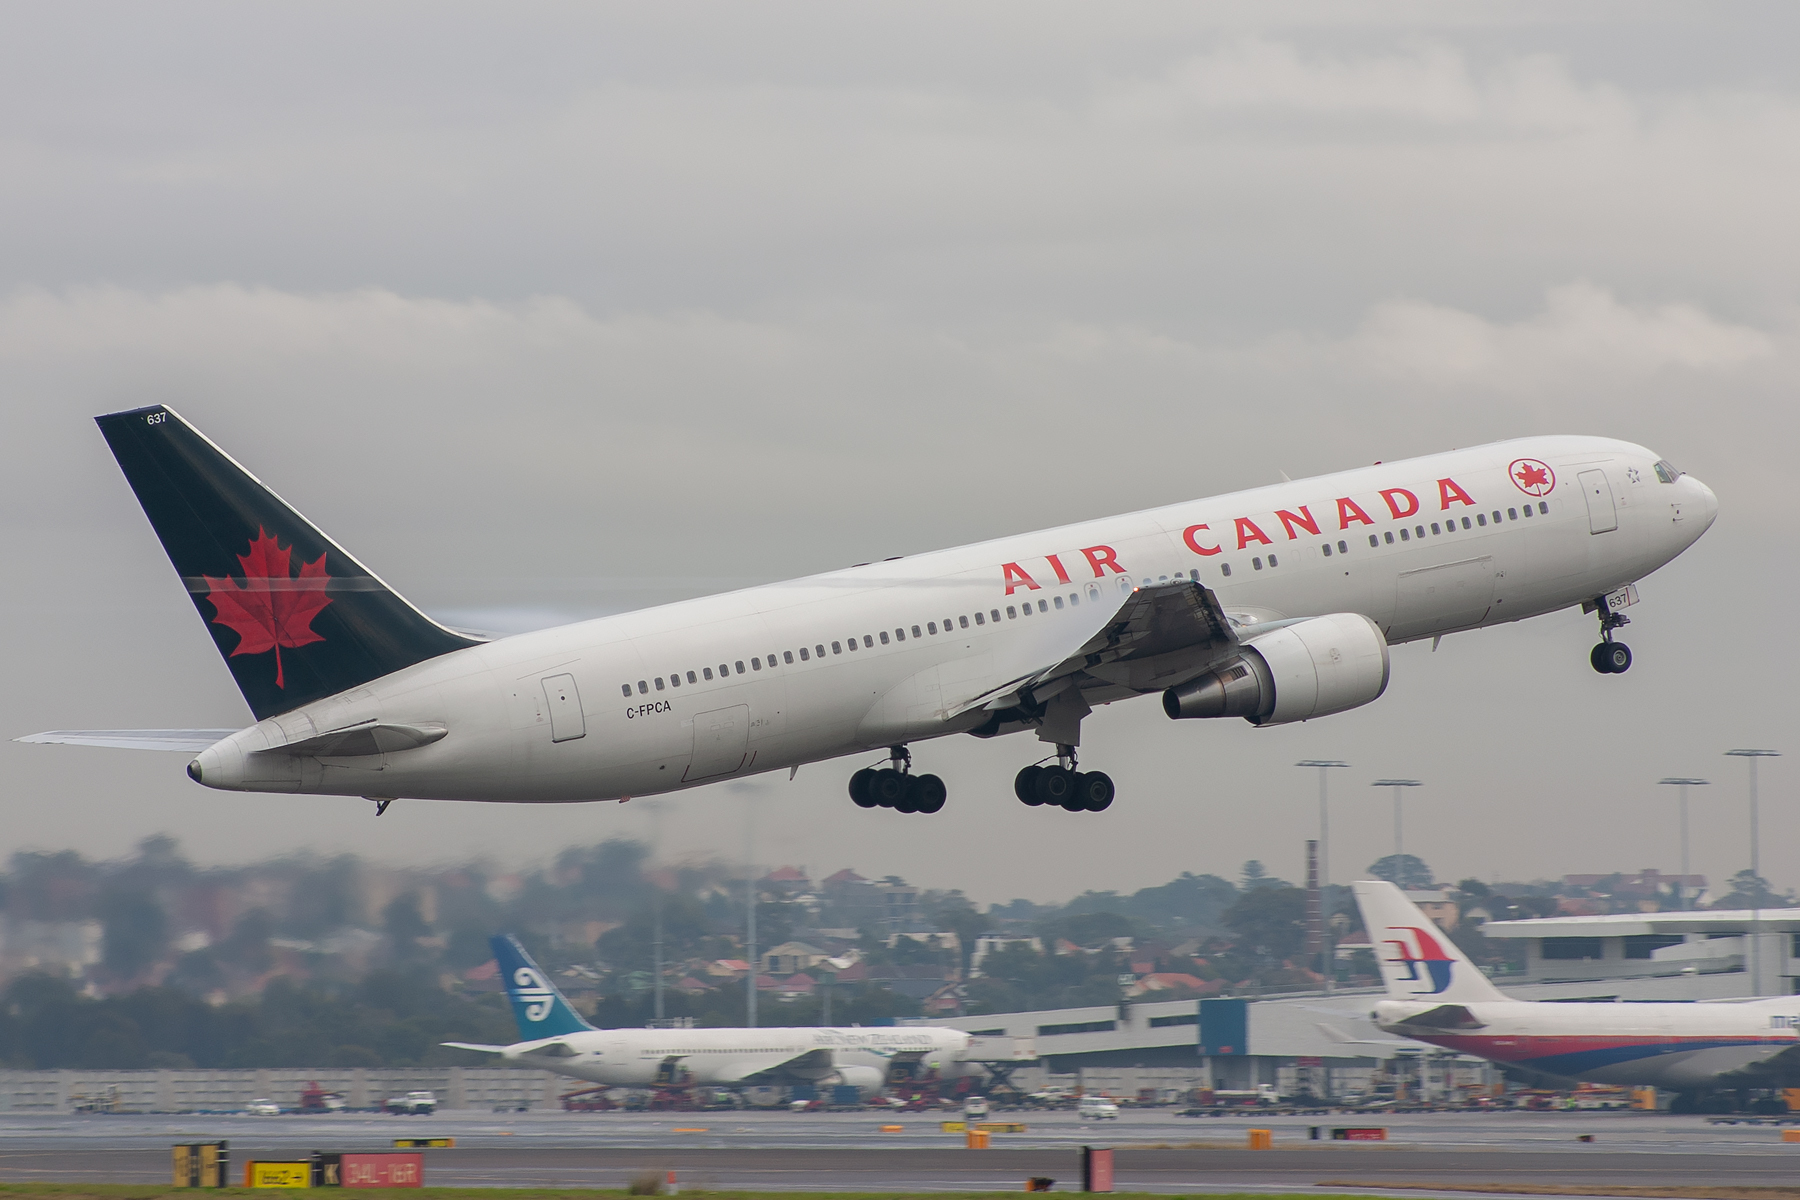 Air Canada Boeing 767-300ER C-FPCA at Kingsford Smith